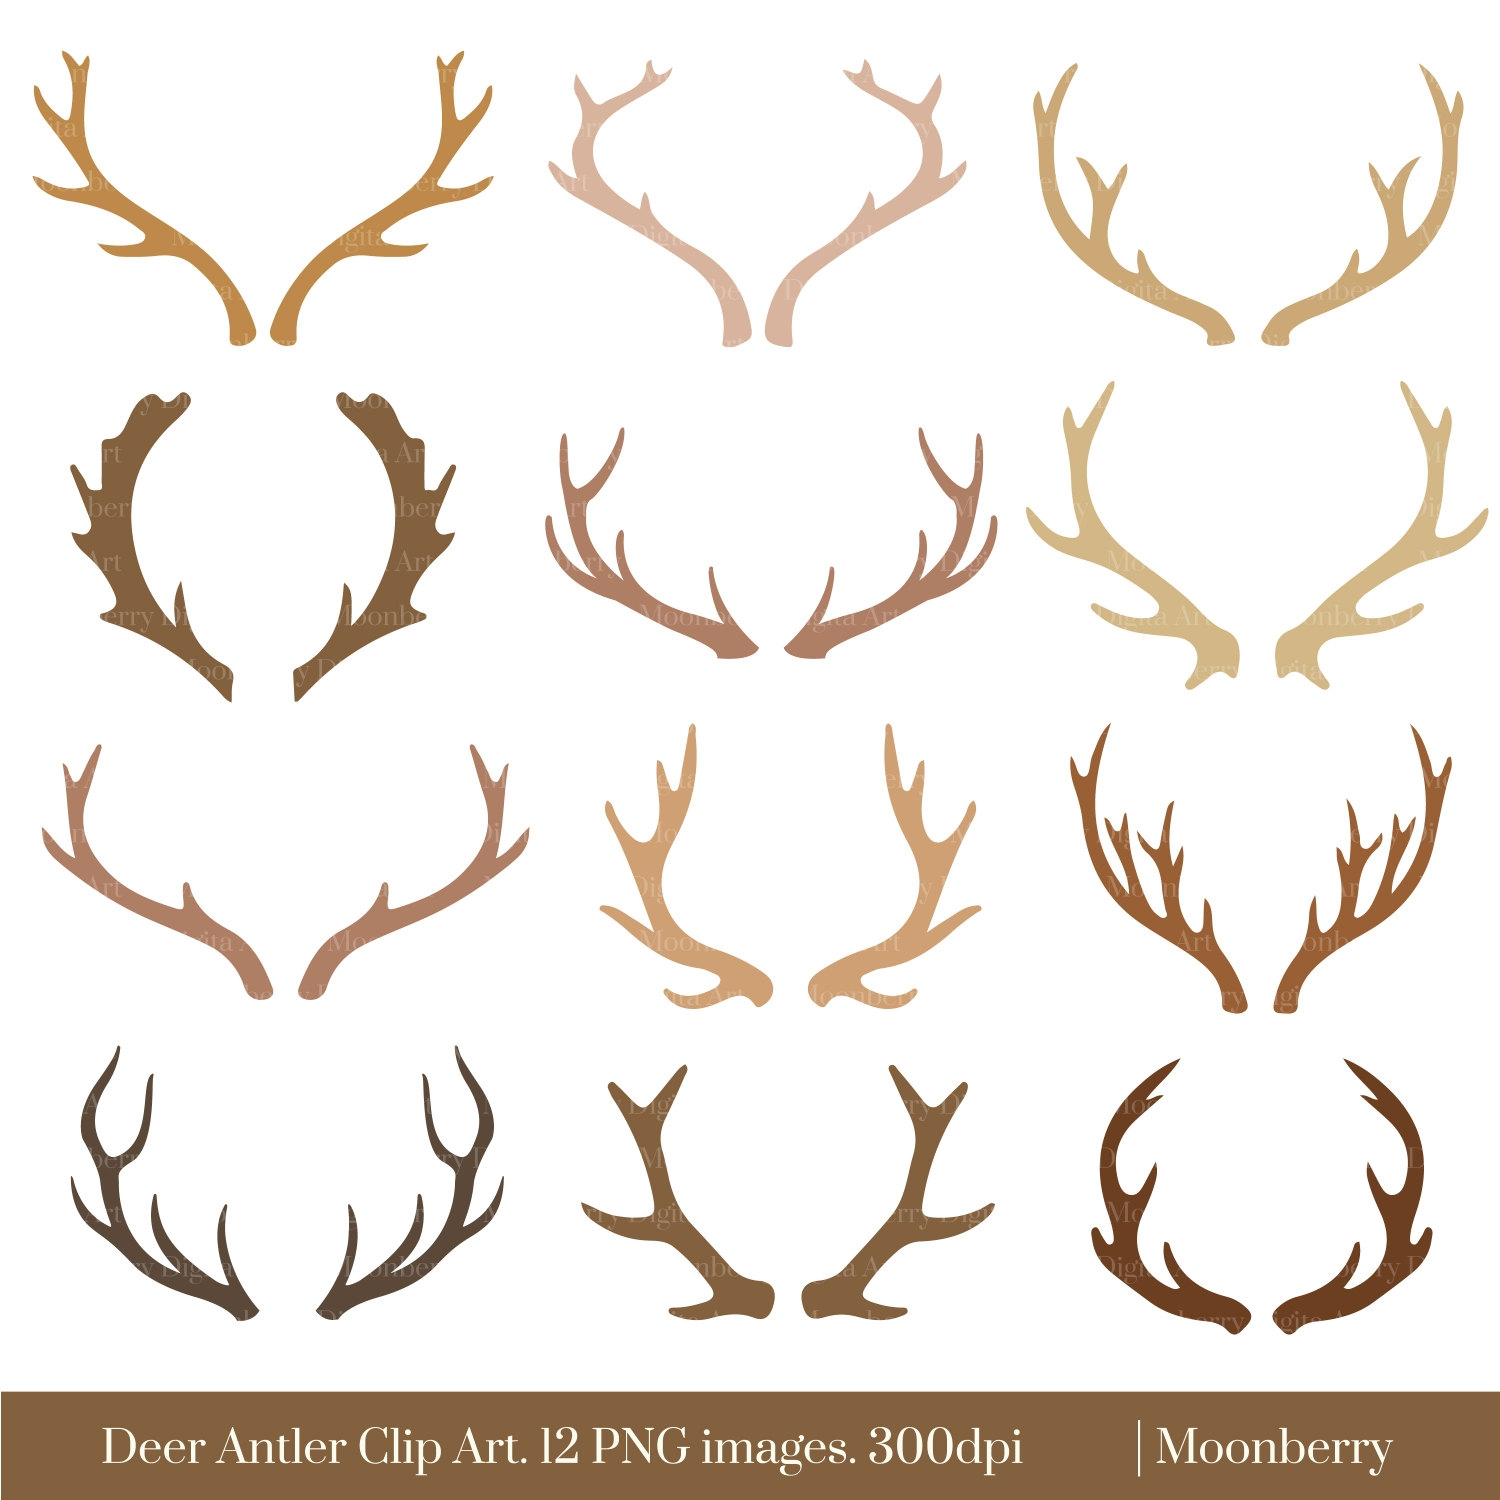 Awesome collection digital f. Antler clipart